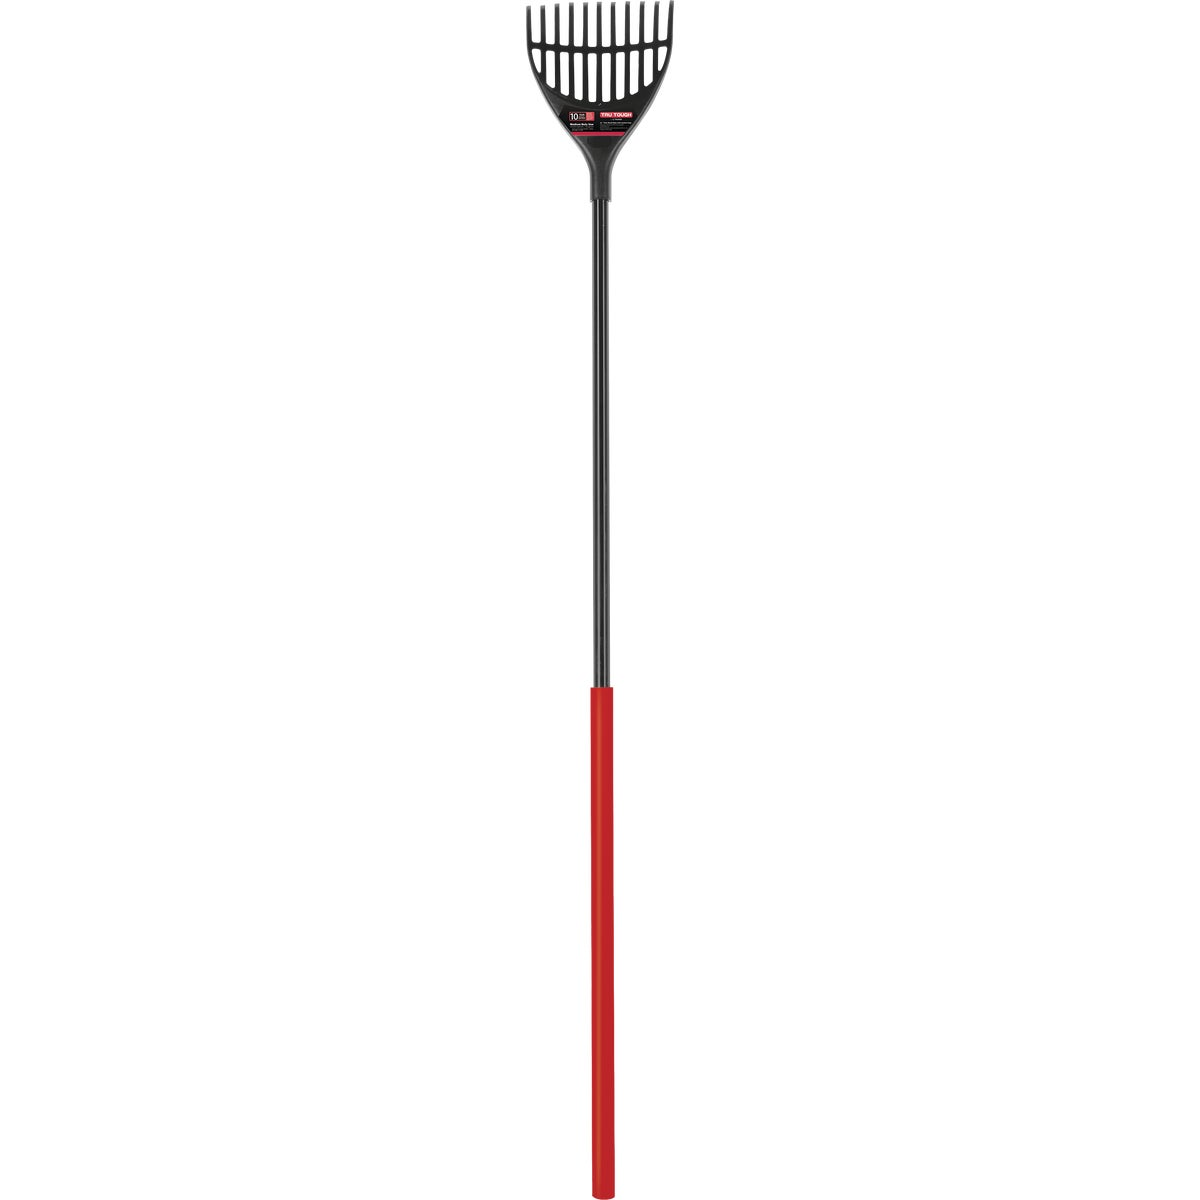 "8"" POLY SHRUB RAKE - 1935500 by Ames True Temper"